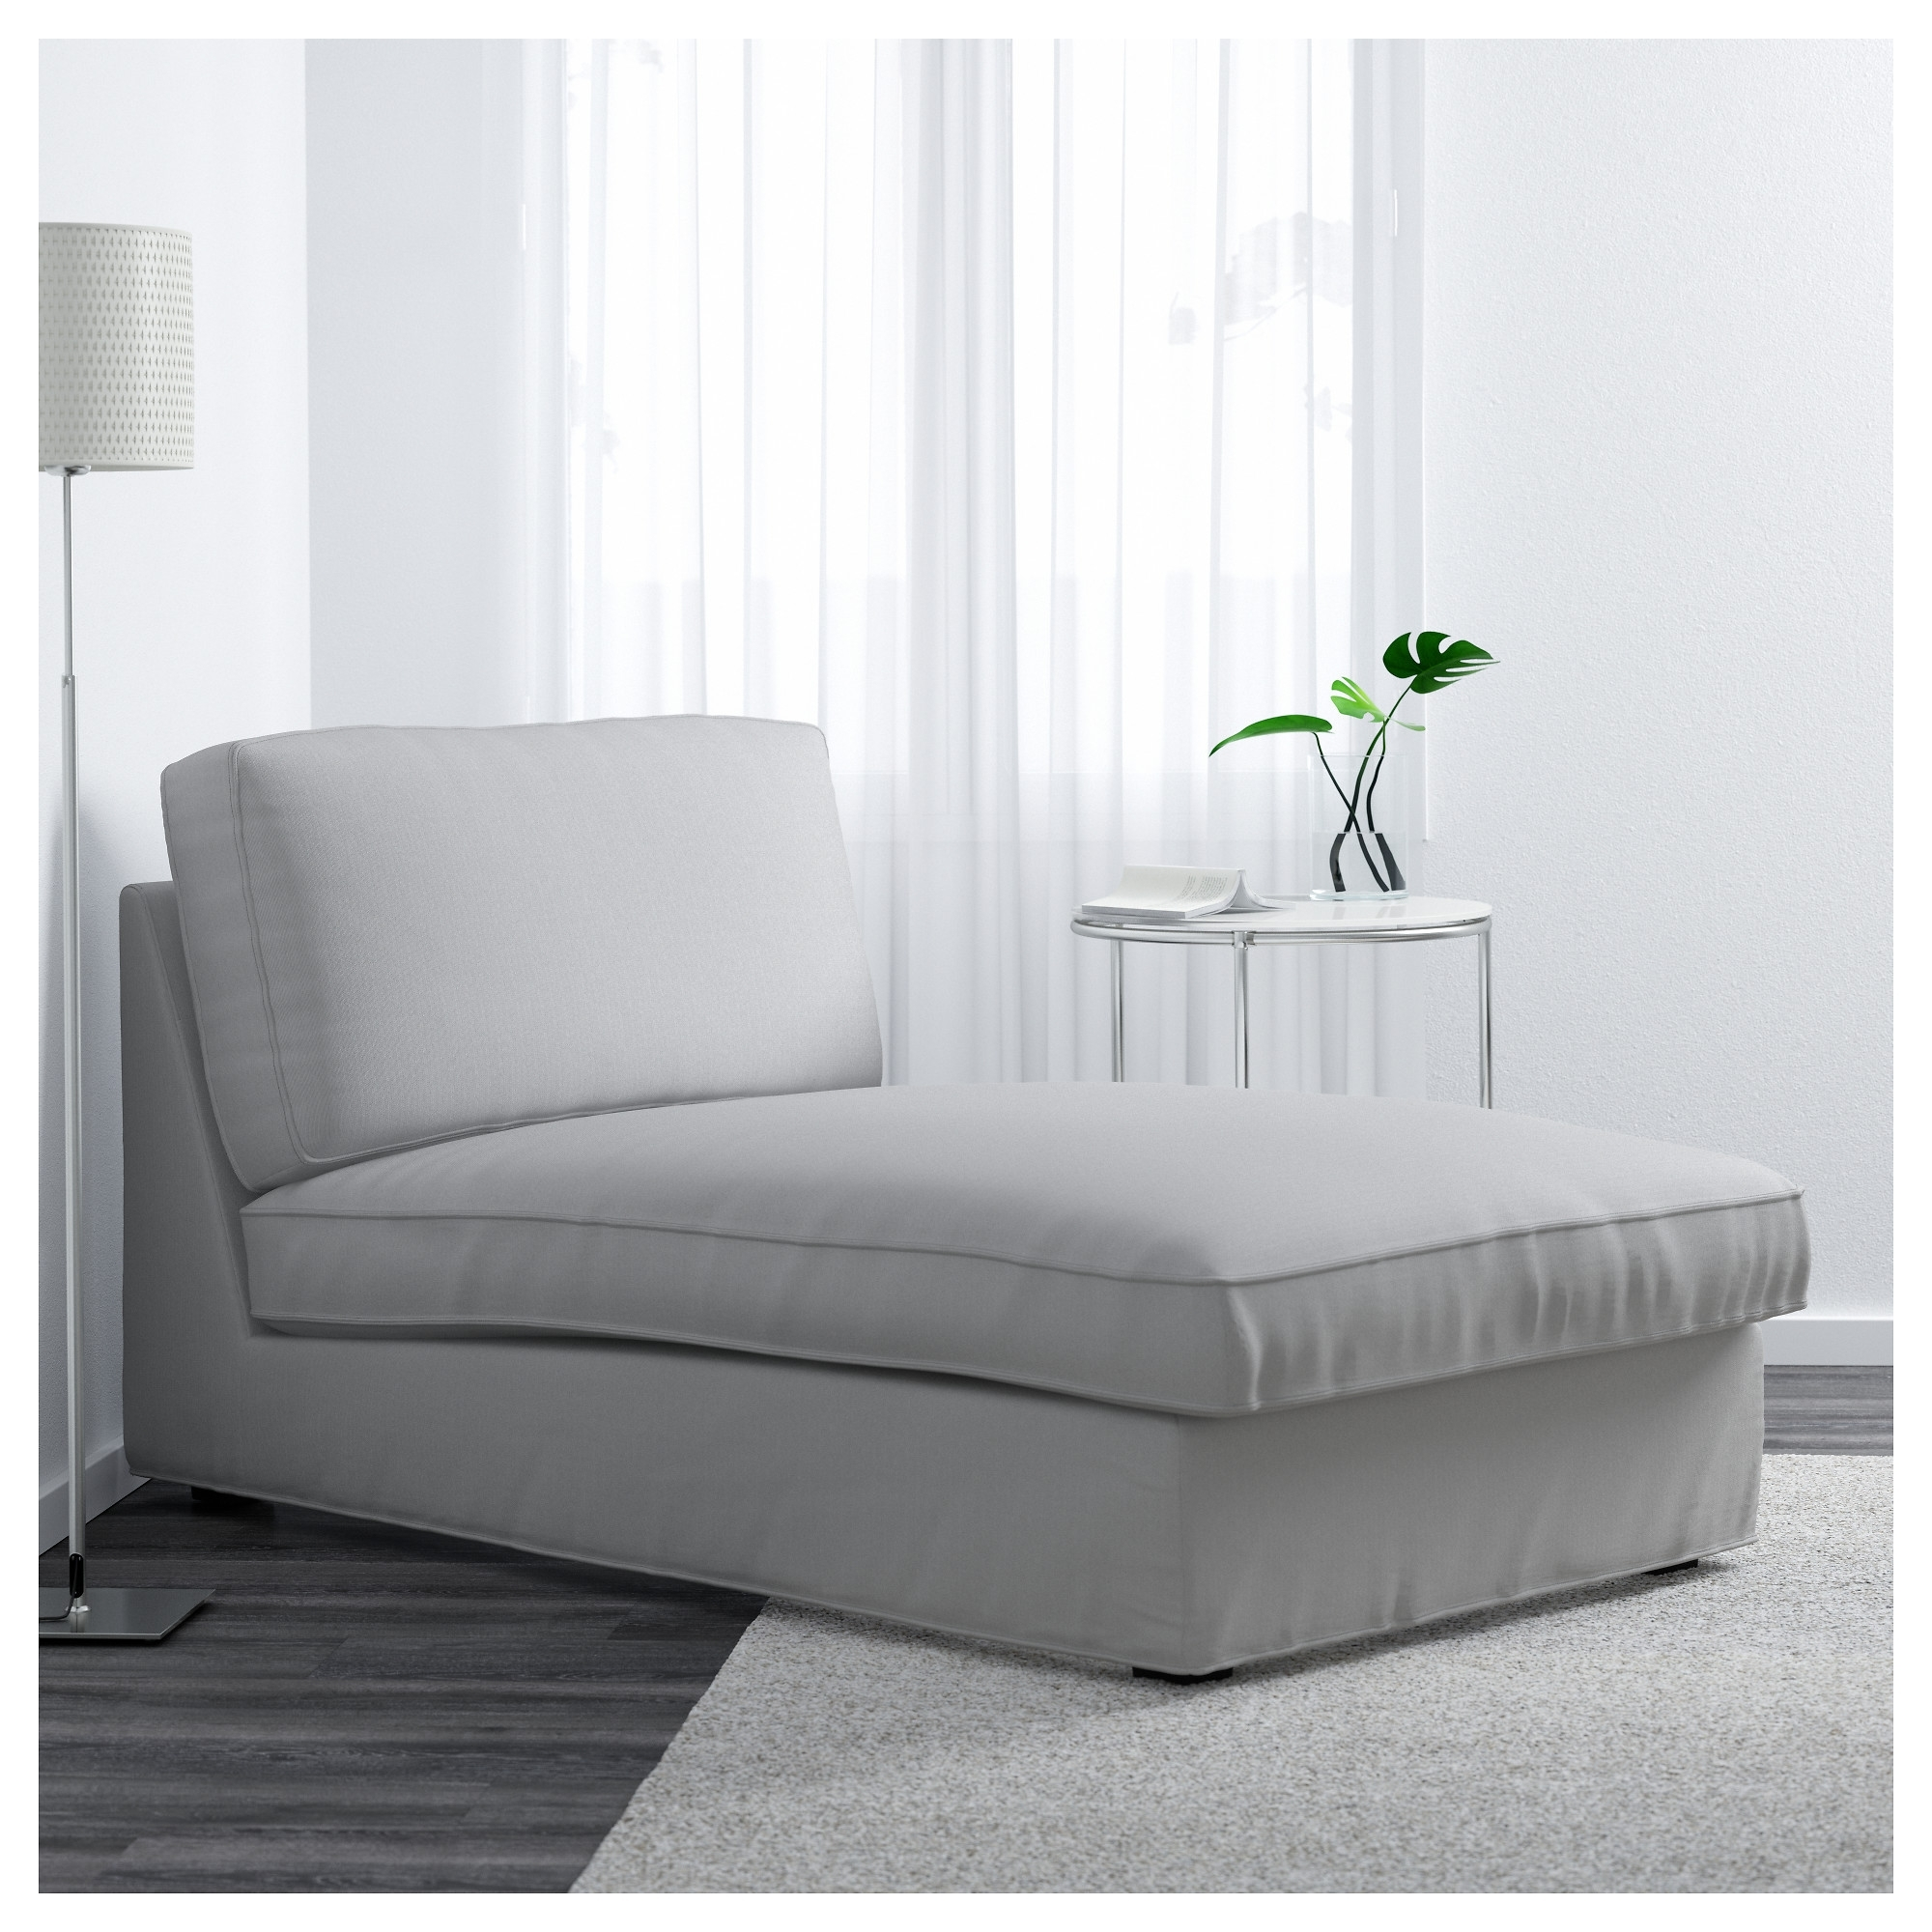 Preferred Kivik Chaise Longue Ramna Light Grey – Ikea With Regard To Ikea Chaise Lounge Chairs (View 12 of 15)